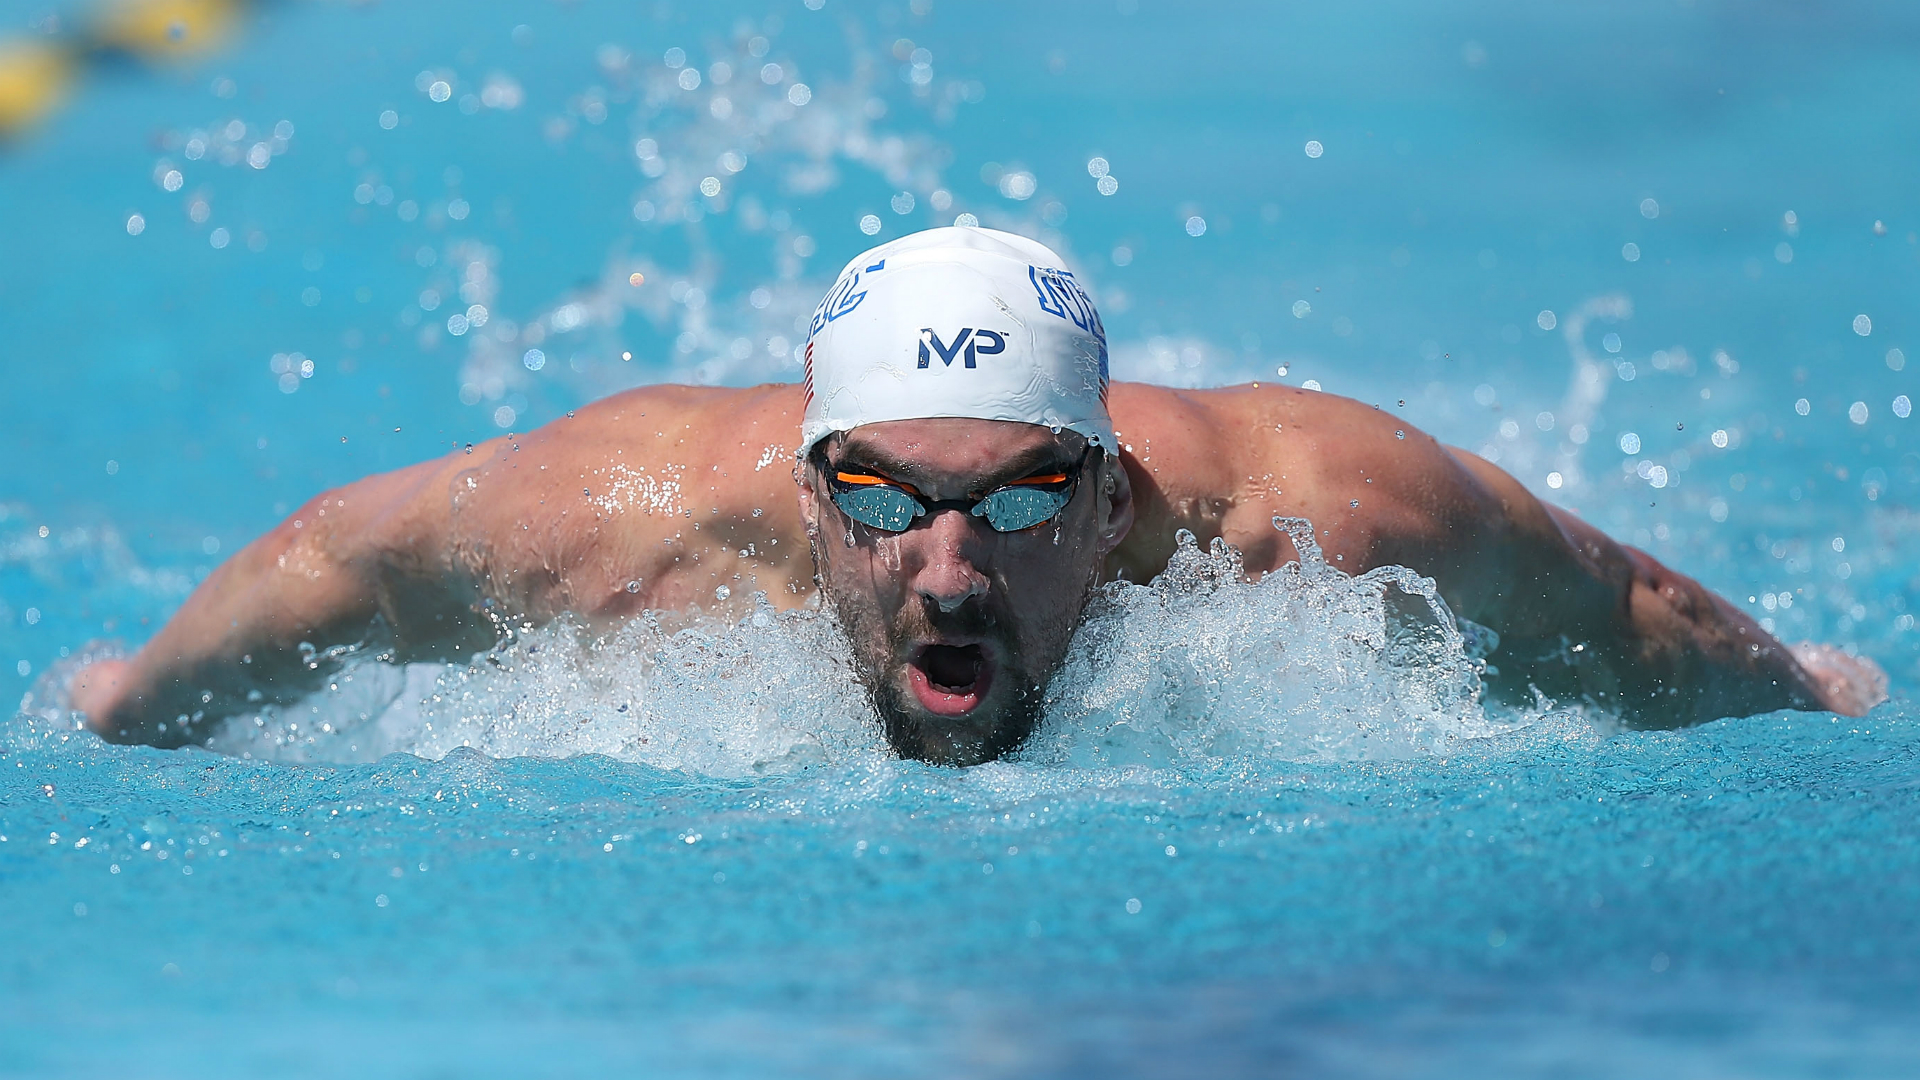 Michael Phelps explains why he's returning to 200-meter butterfly